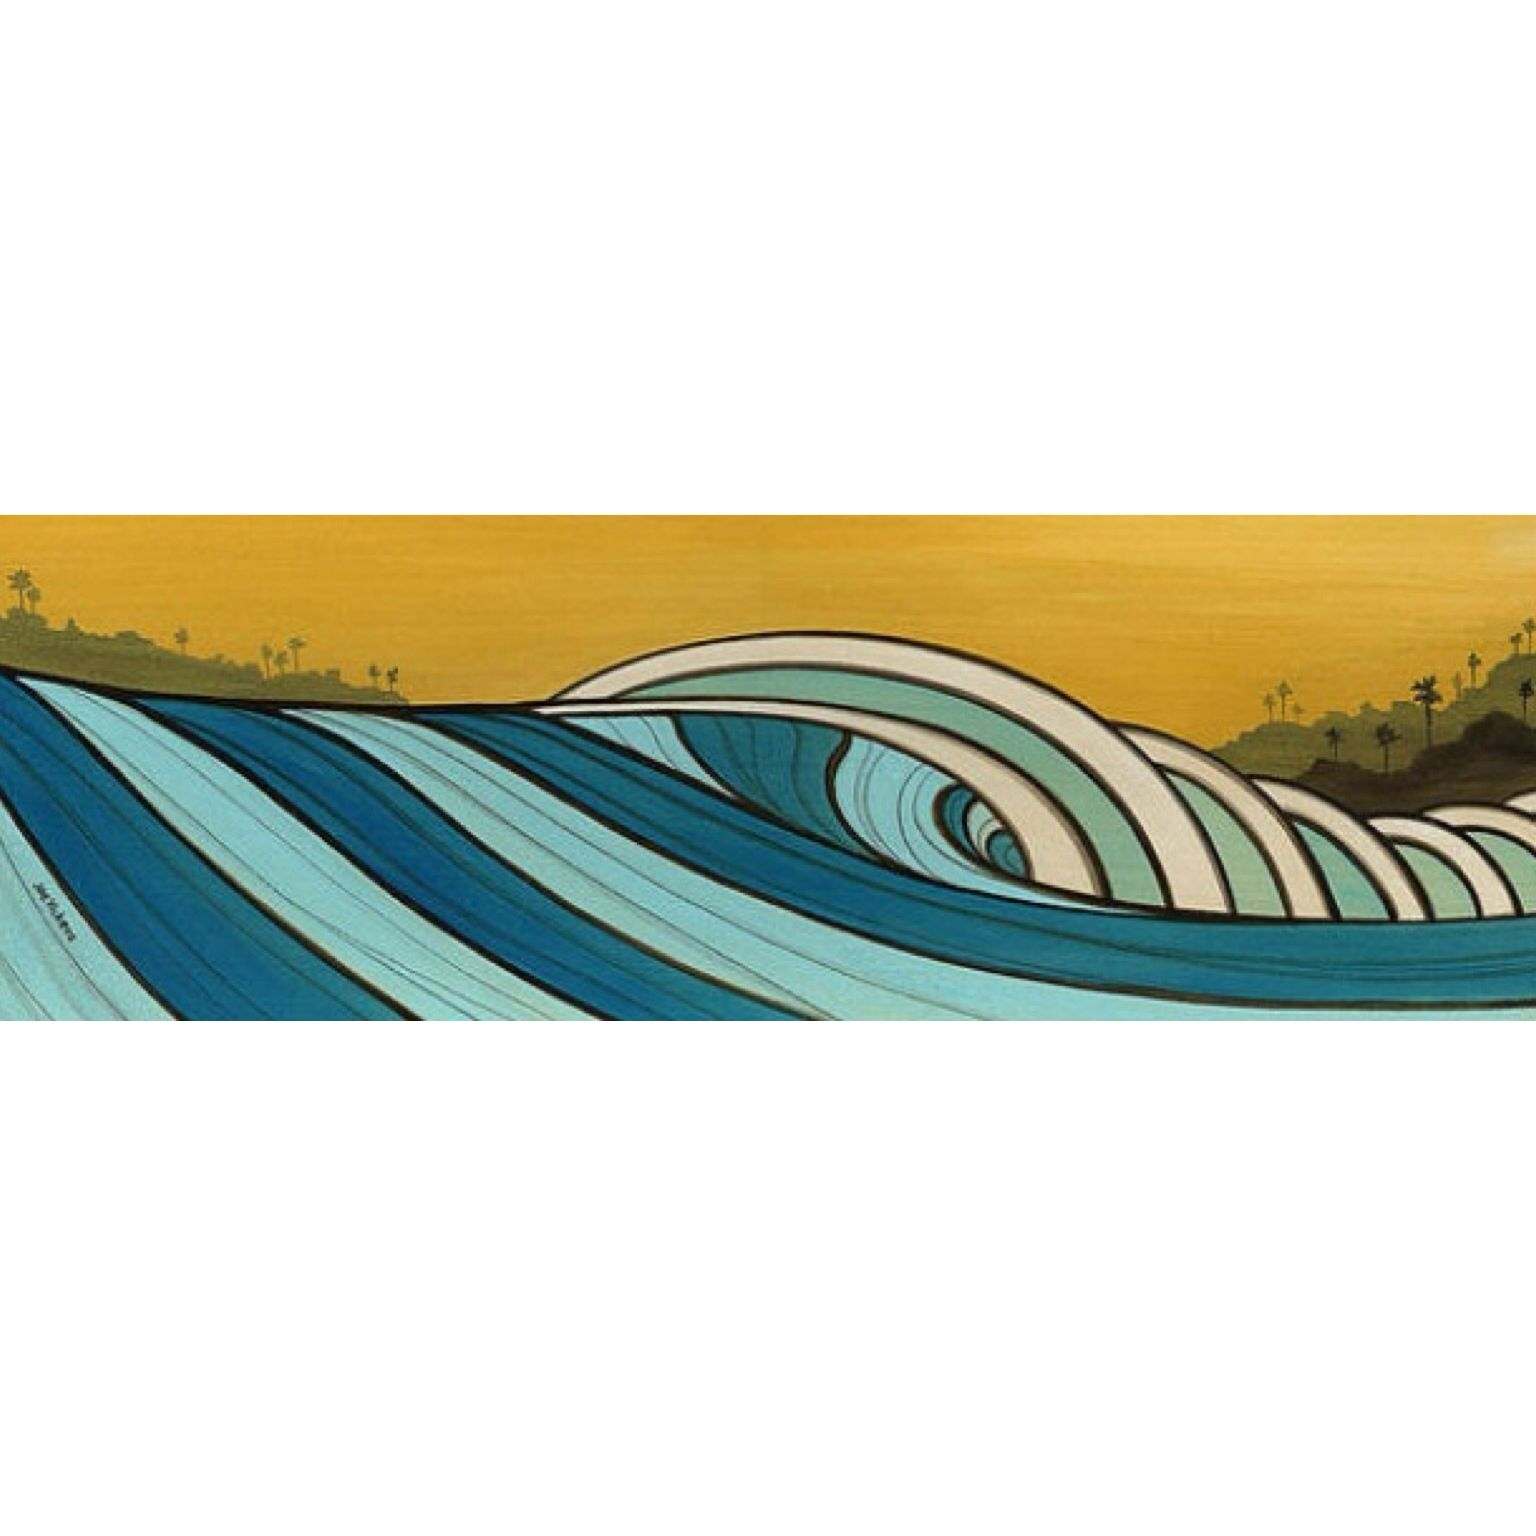 The Hills - mixed media in wood - surf art by Joe Vickers